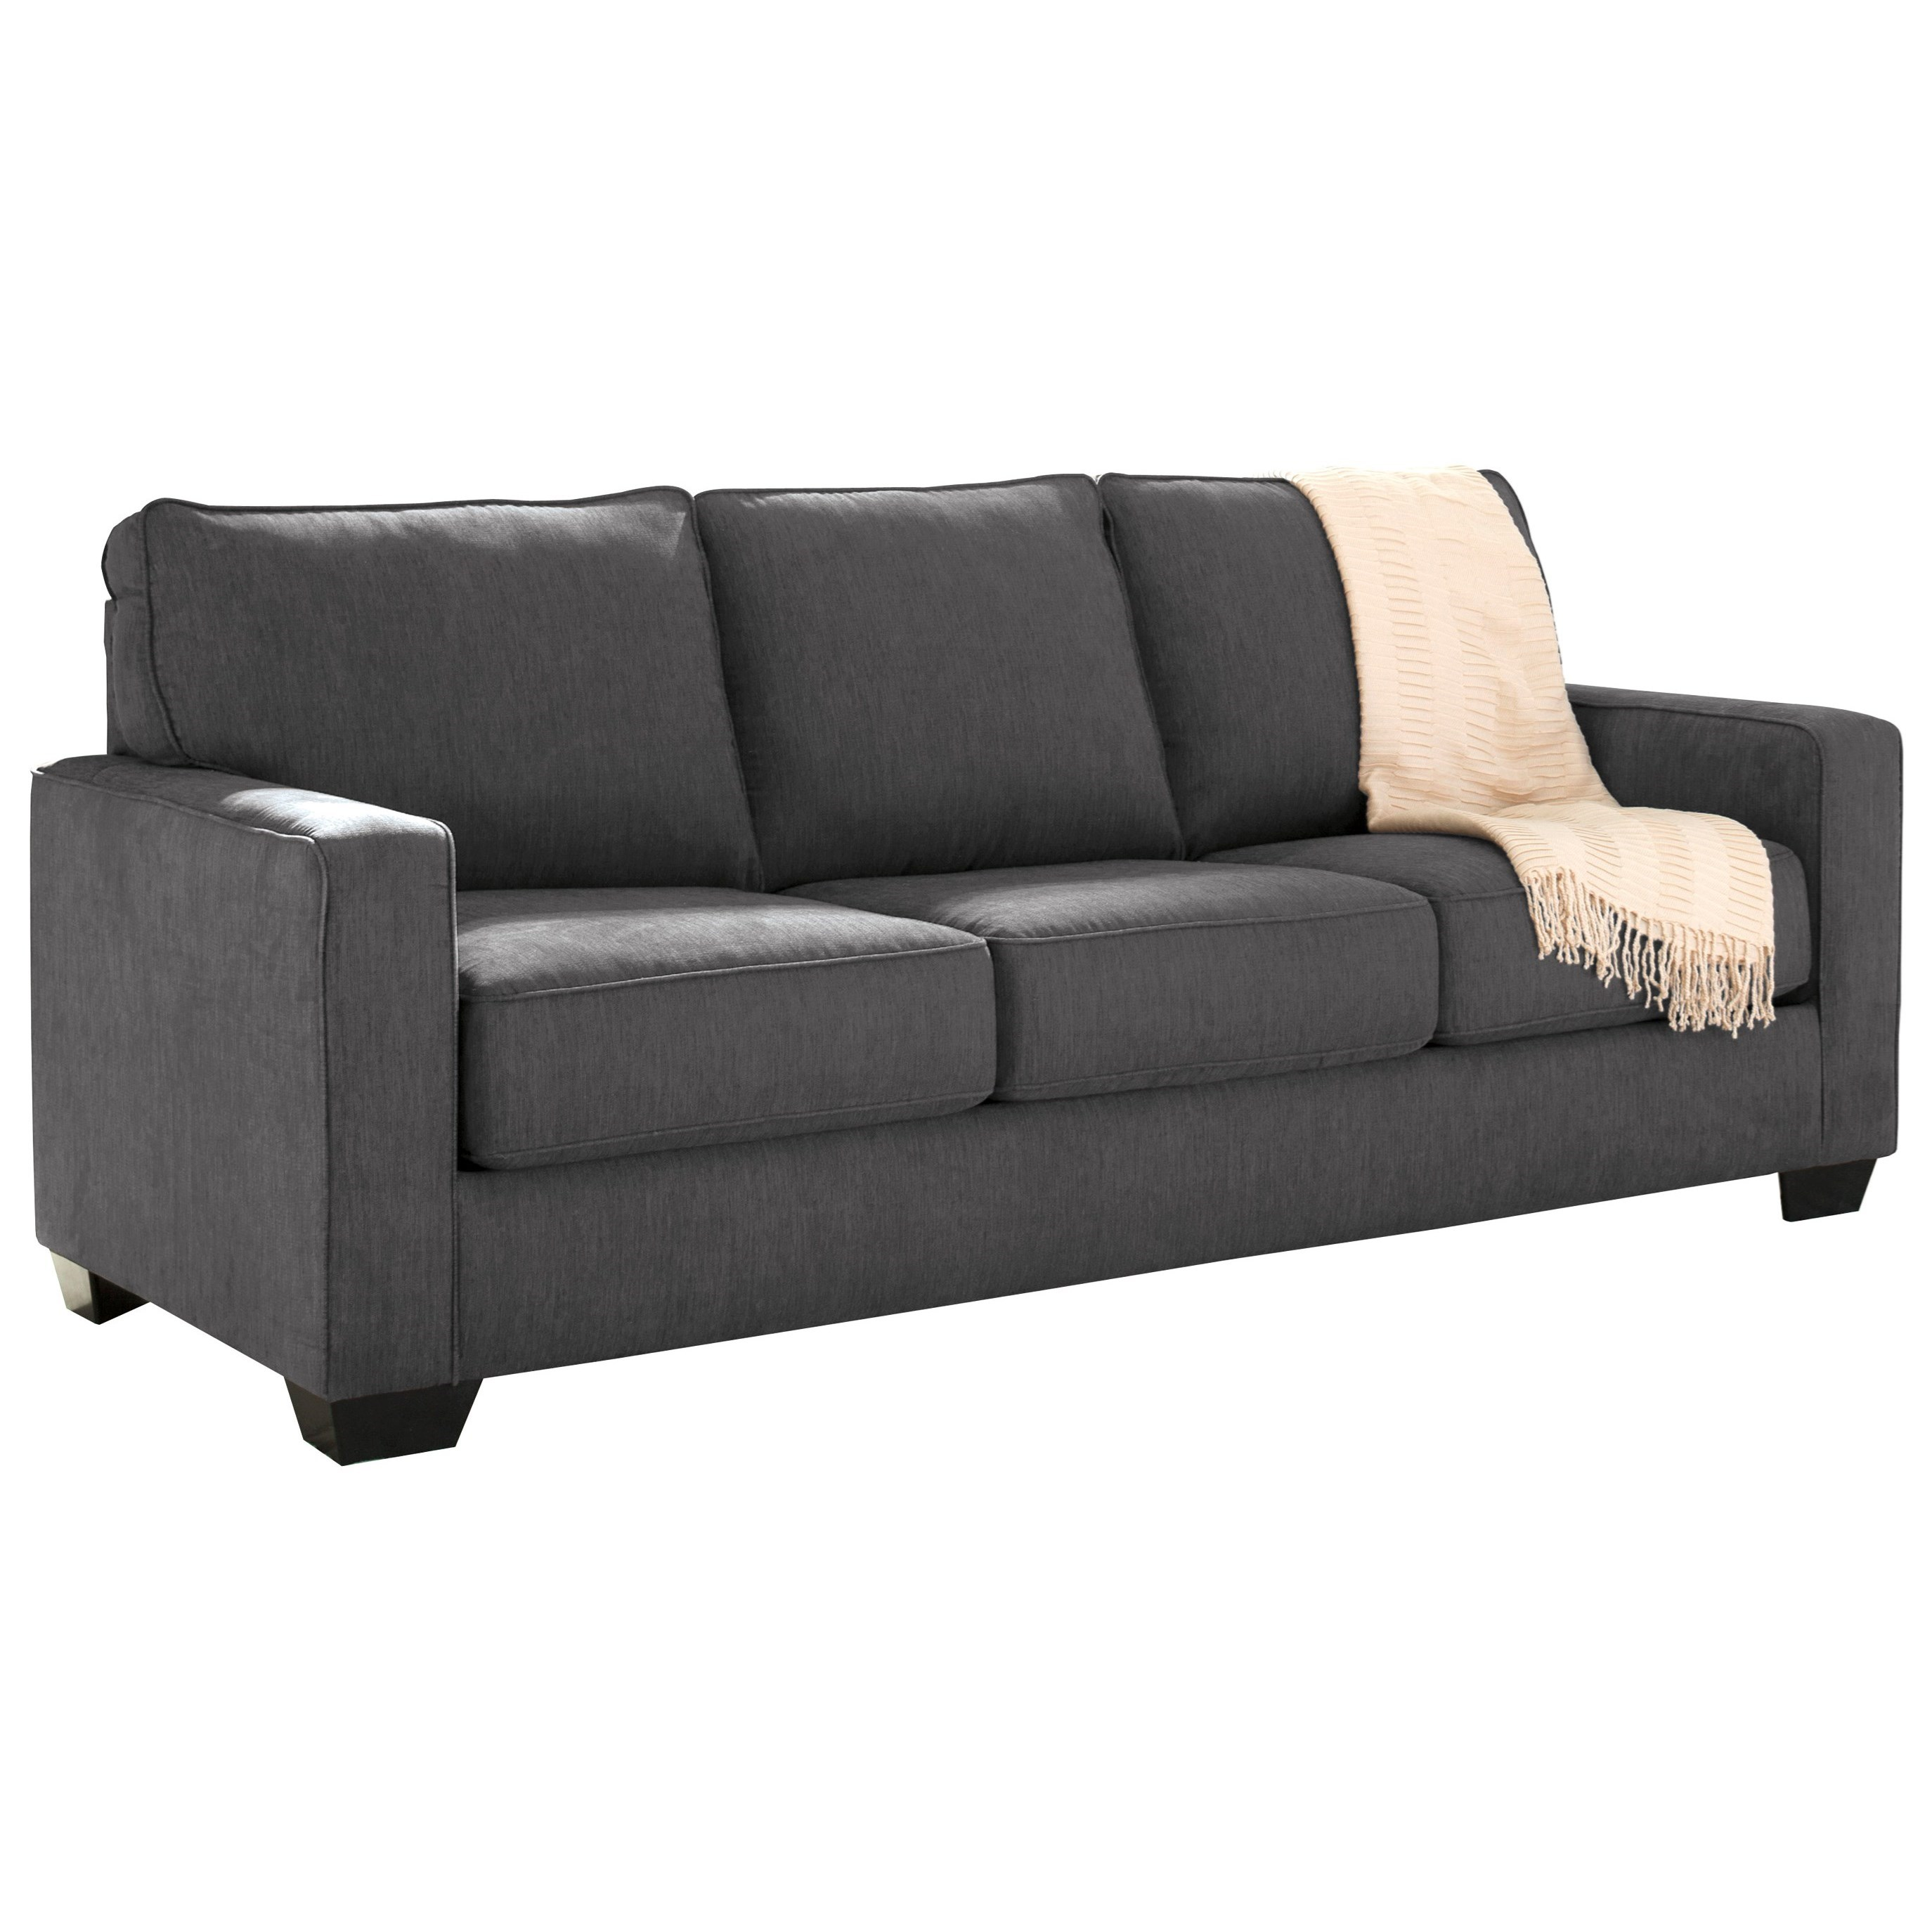 queen sofa sleeper with memory foam mattress by signature design by ashley wolf and gardiner. Black Bedroom Furniture Sets. Home Design Ideas